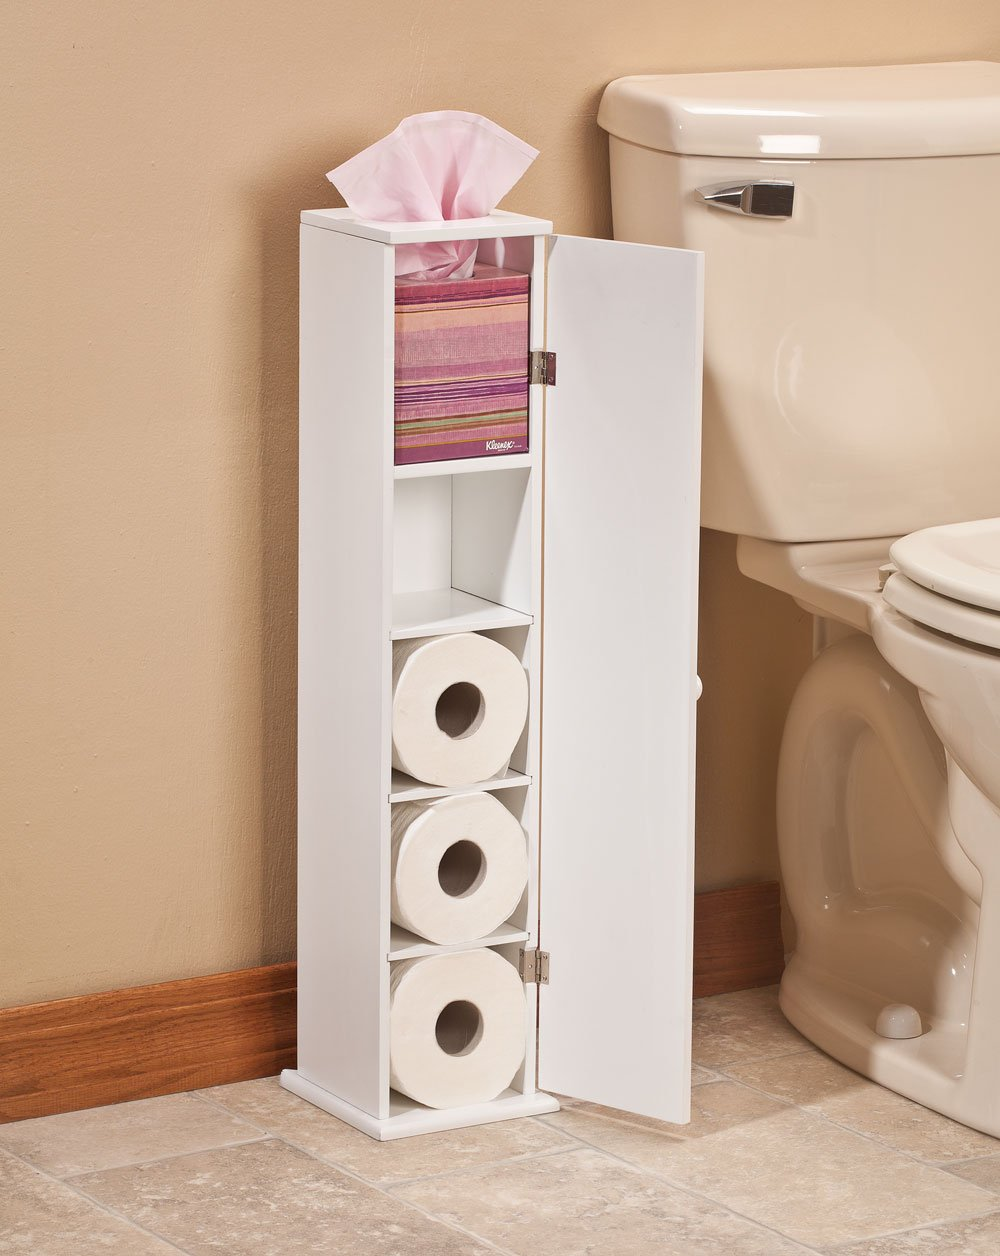 18 Toilet Tissue Cabinet Home Design 85 Inspiring Small